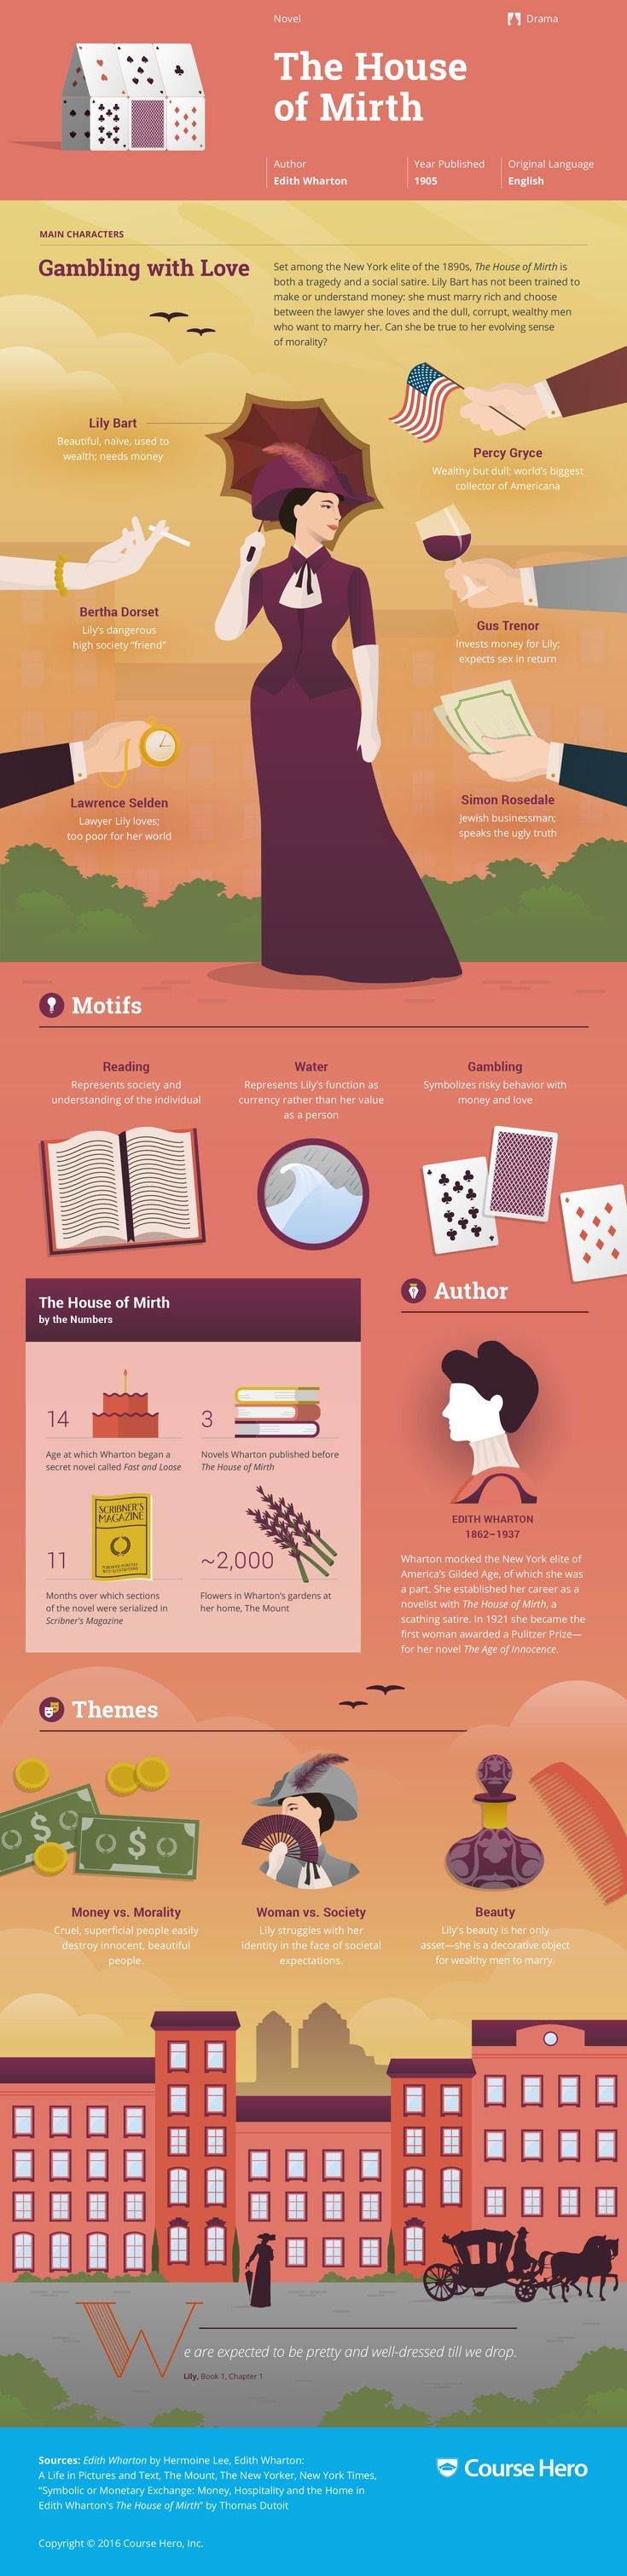 This @CourseHero infographic on The House of Mirth is both visually stunning and…